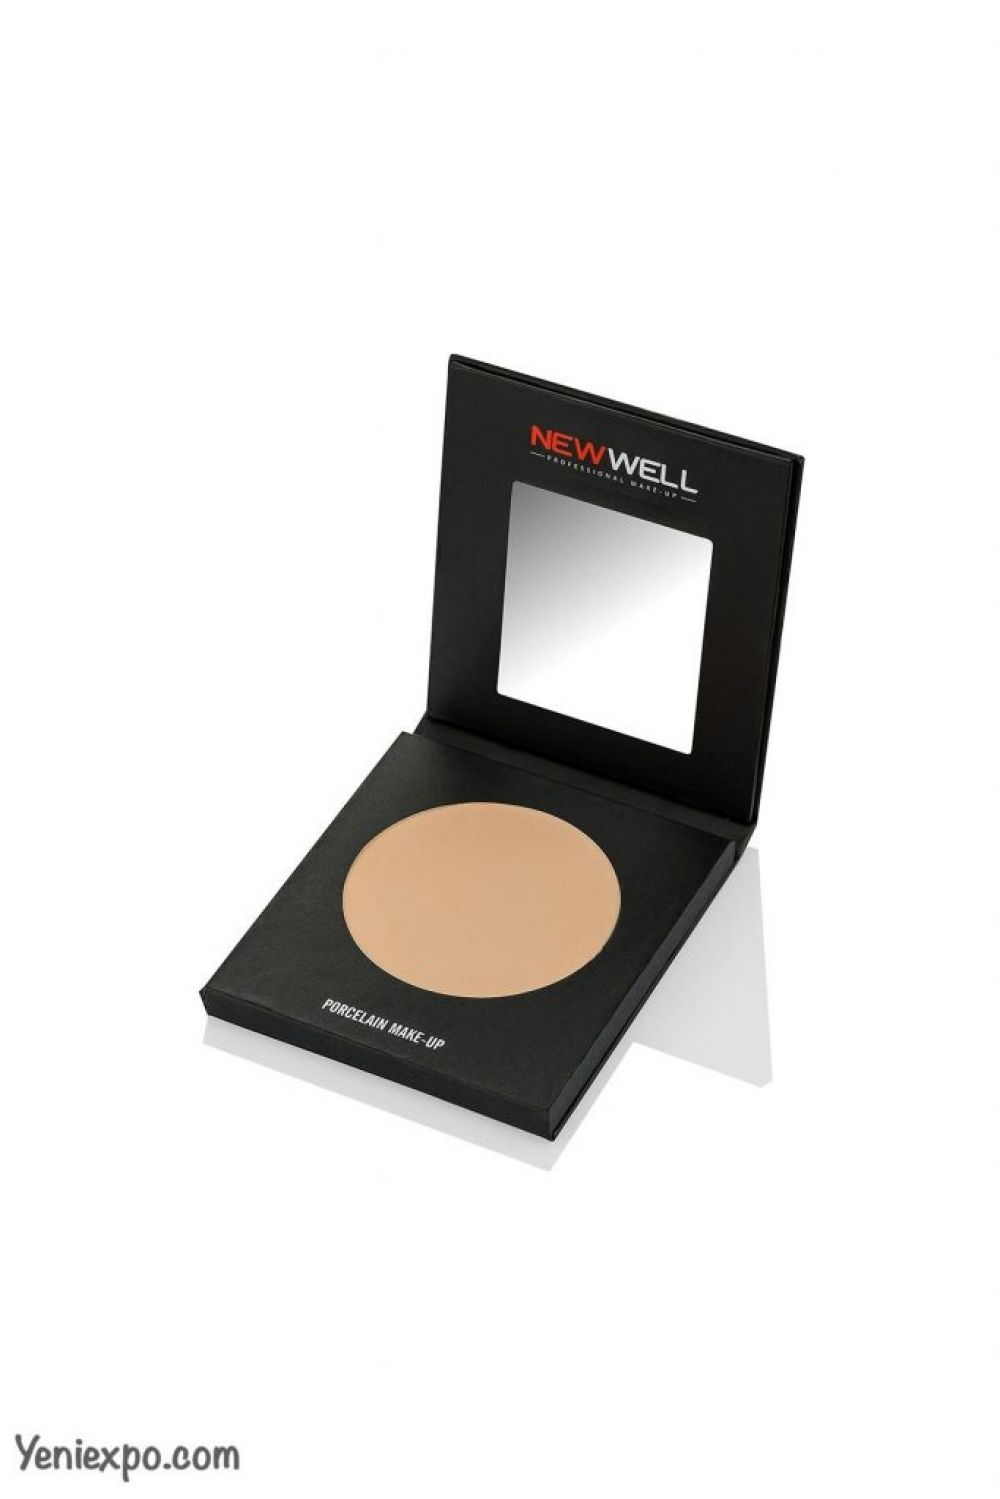 Porcelain Make-up Powder - NW21 129 ✨ Export Orders to the whole world ✨ Best of Turkish Made products Click picture to view details of this product Follow Us and share this on your page #YeniExpo #madeinturkey 🇹🇷🇹🇷🇹🇷 #SupportTurkey